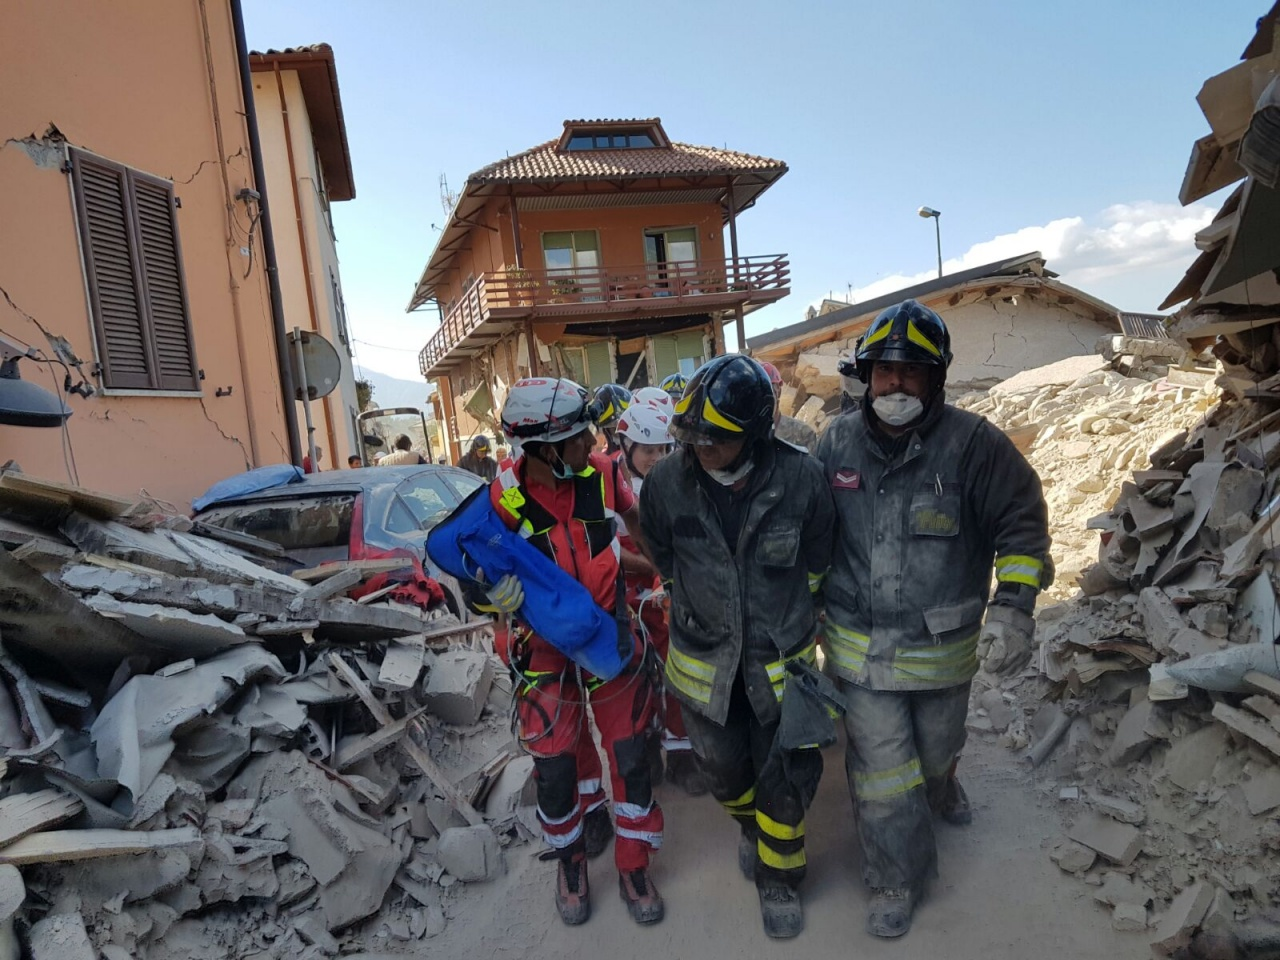 Earthquake in Italy 24 August 2016